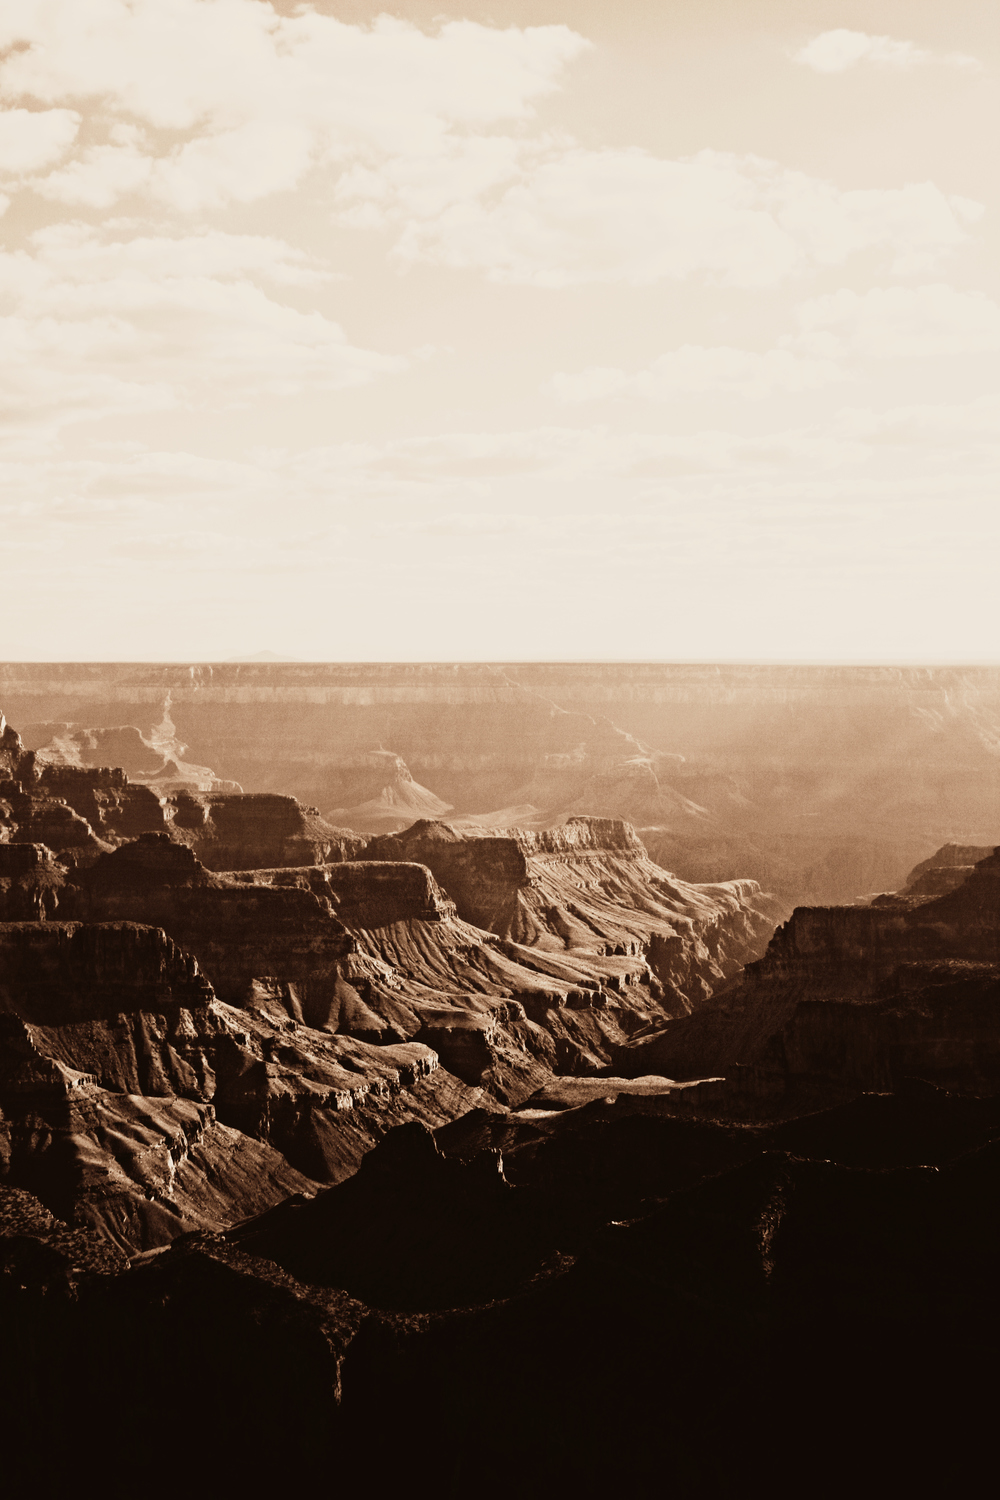 Mattie_Kannard_Grand_Canyon_North_Rim_2_2015.jpg